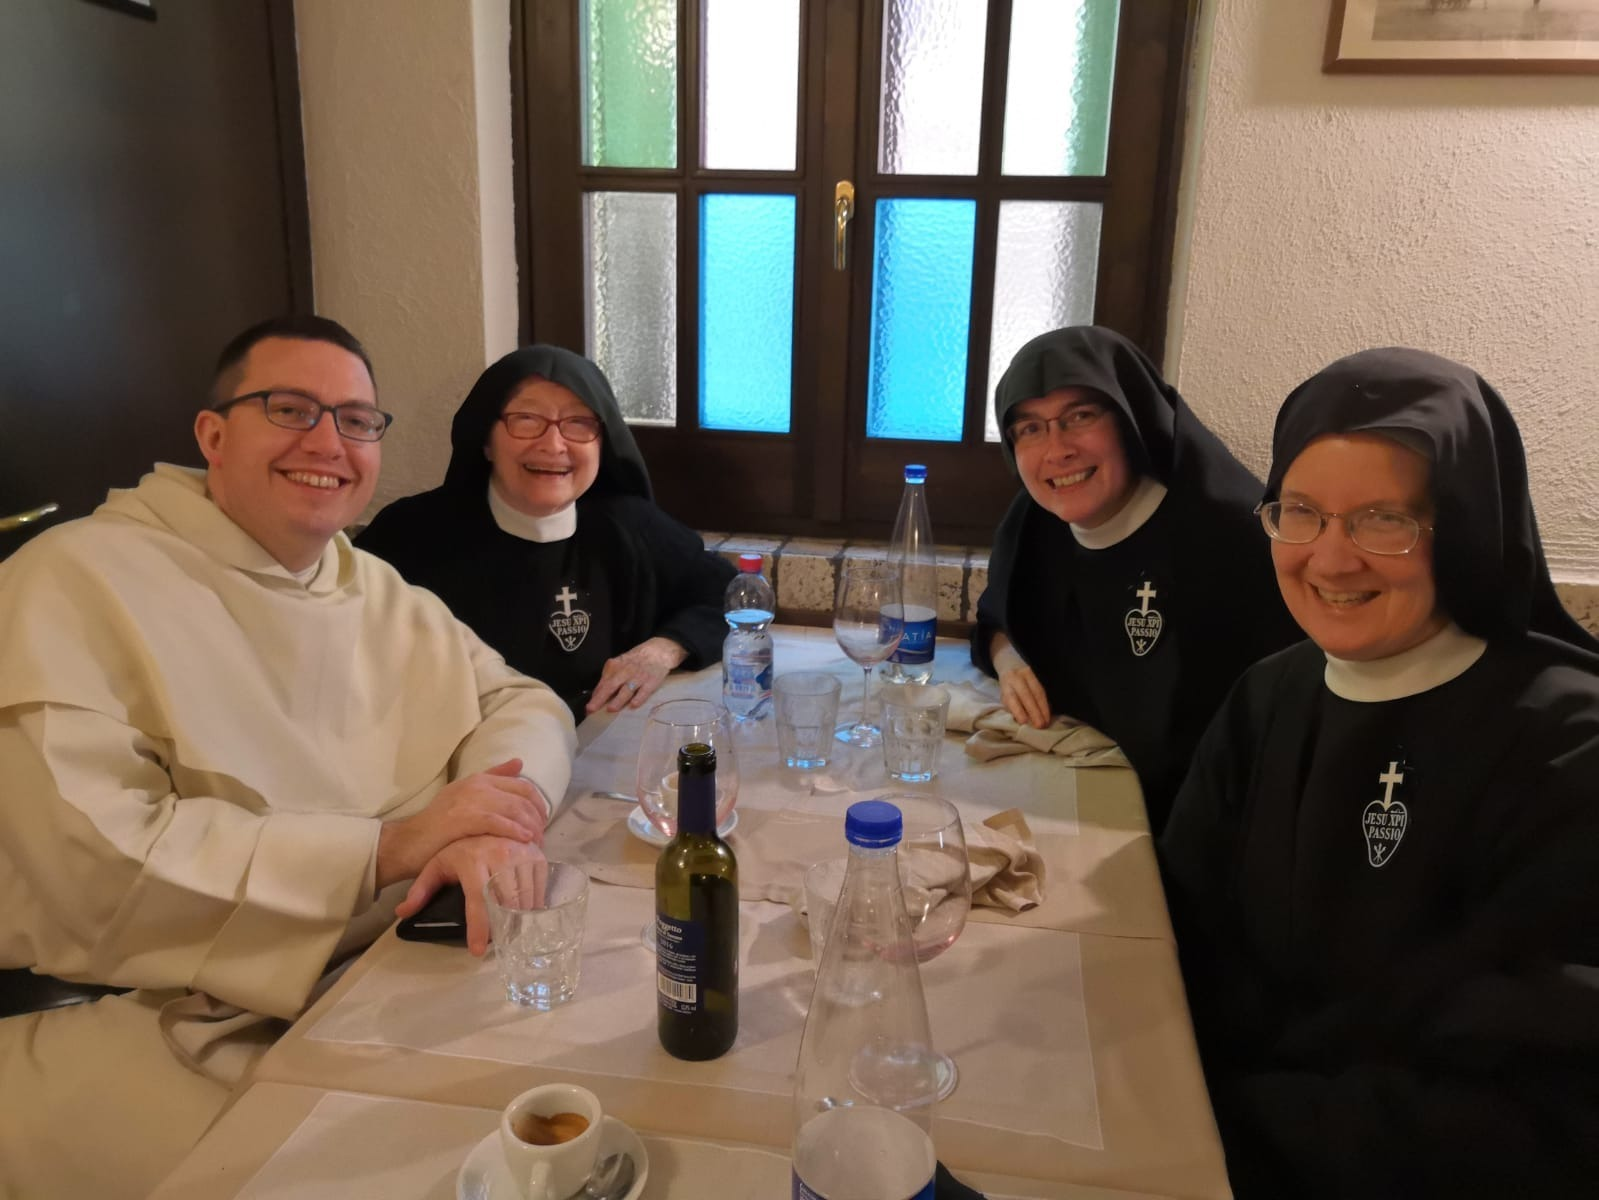 Mother Catherine Marie, Mother John Mary, and Sr. Mary Veronica grab a quick pranzo with Fr. Austin Litke, OP, a dear Dominican friend who is studying in Rome.